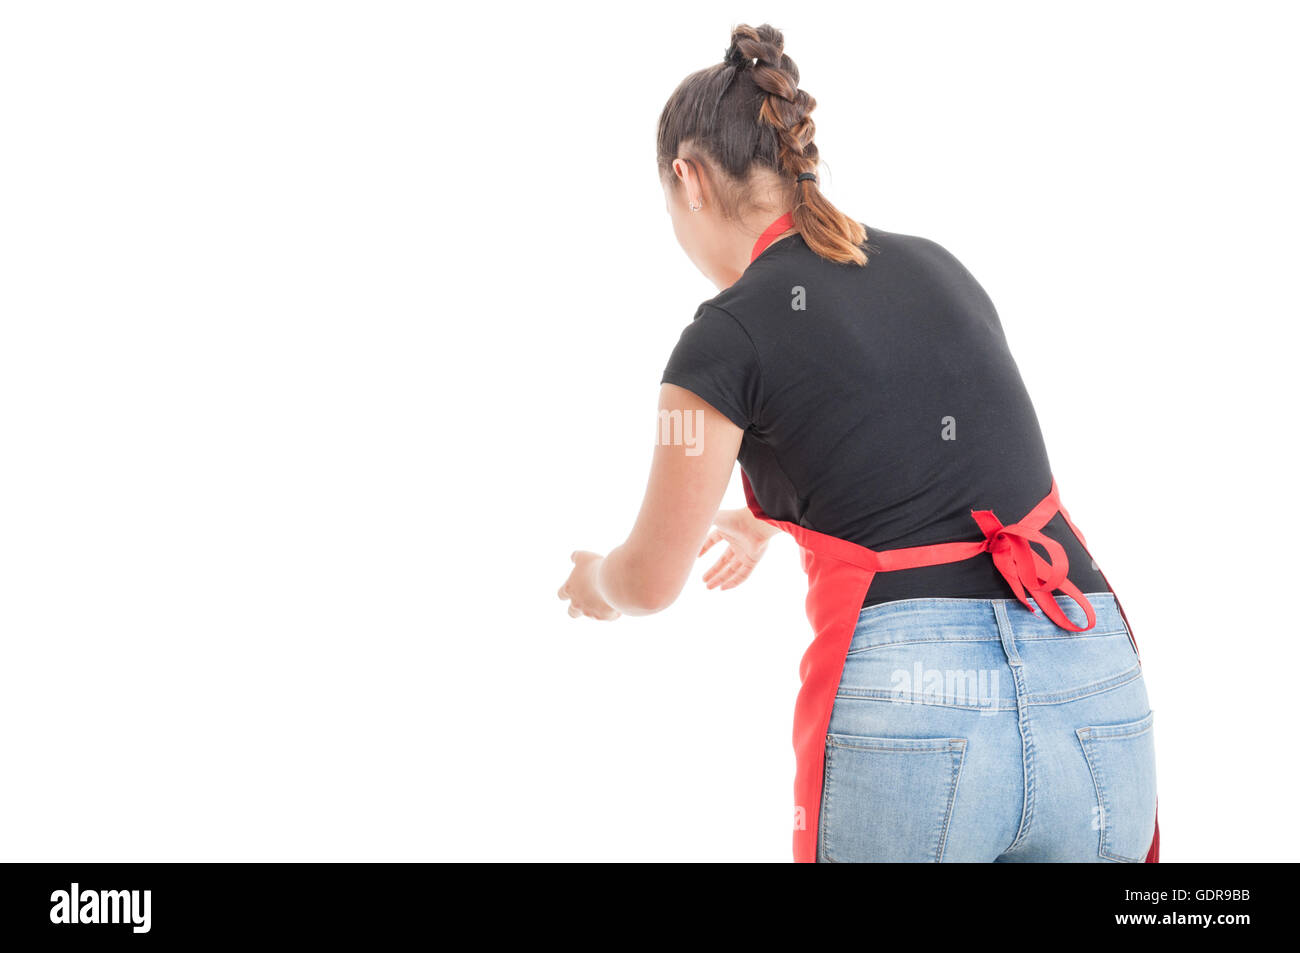 Female employee with apron catching something in back view with copyspace isolated on white - Stock Image